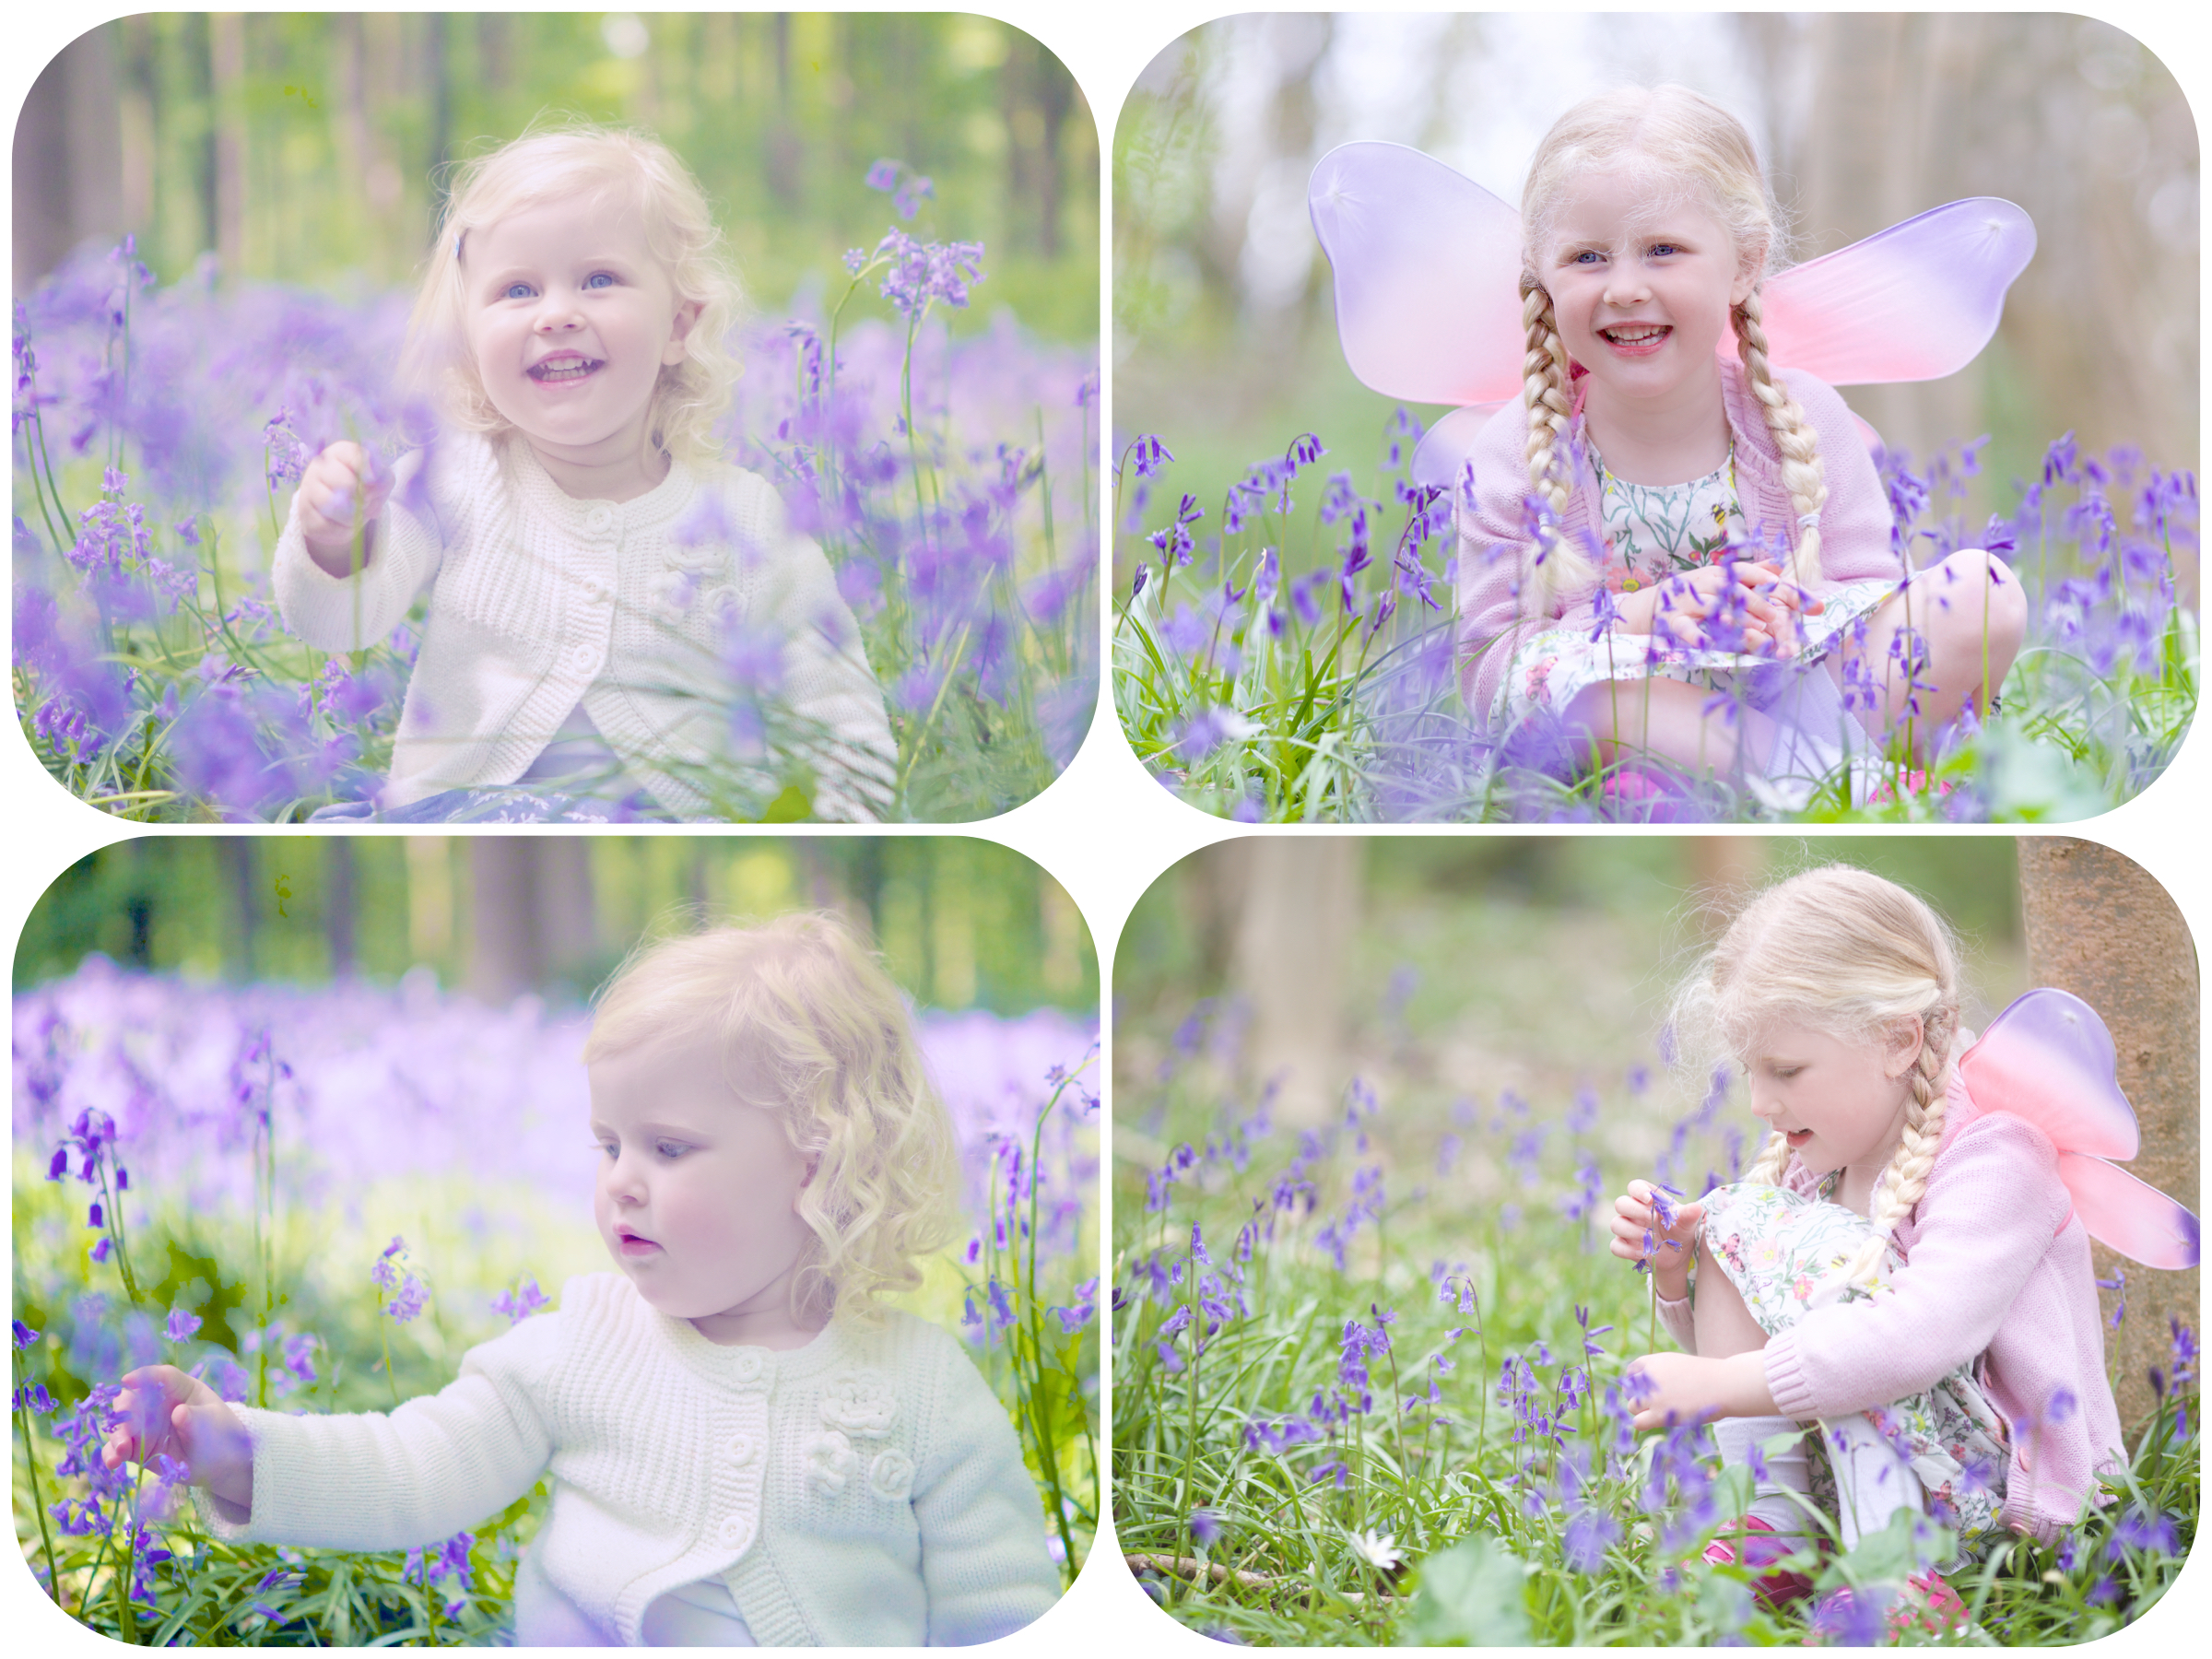 Molly in the bluebells collage